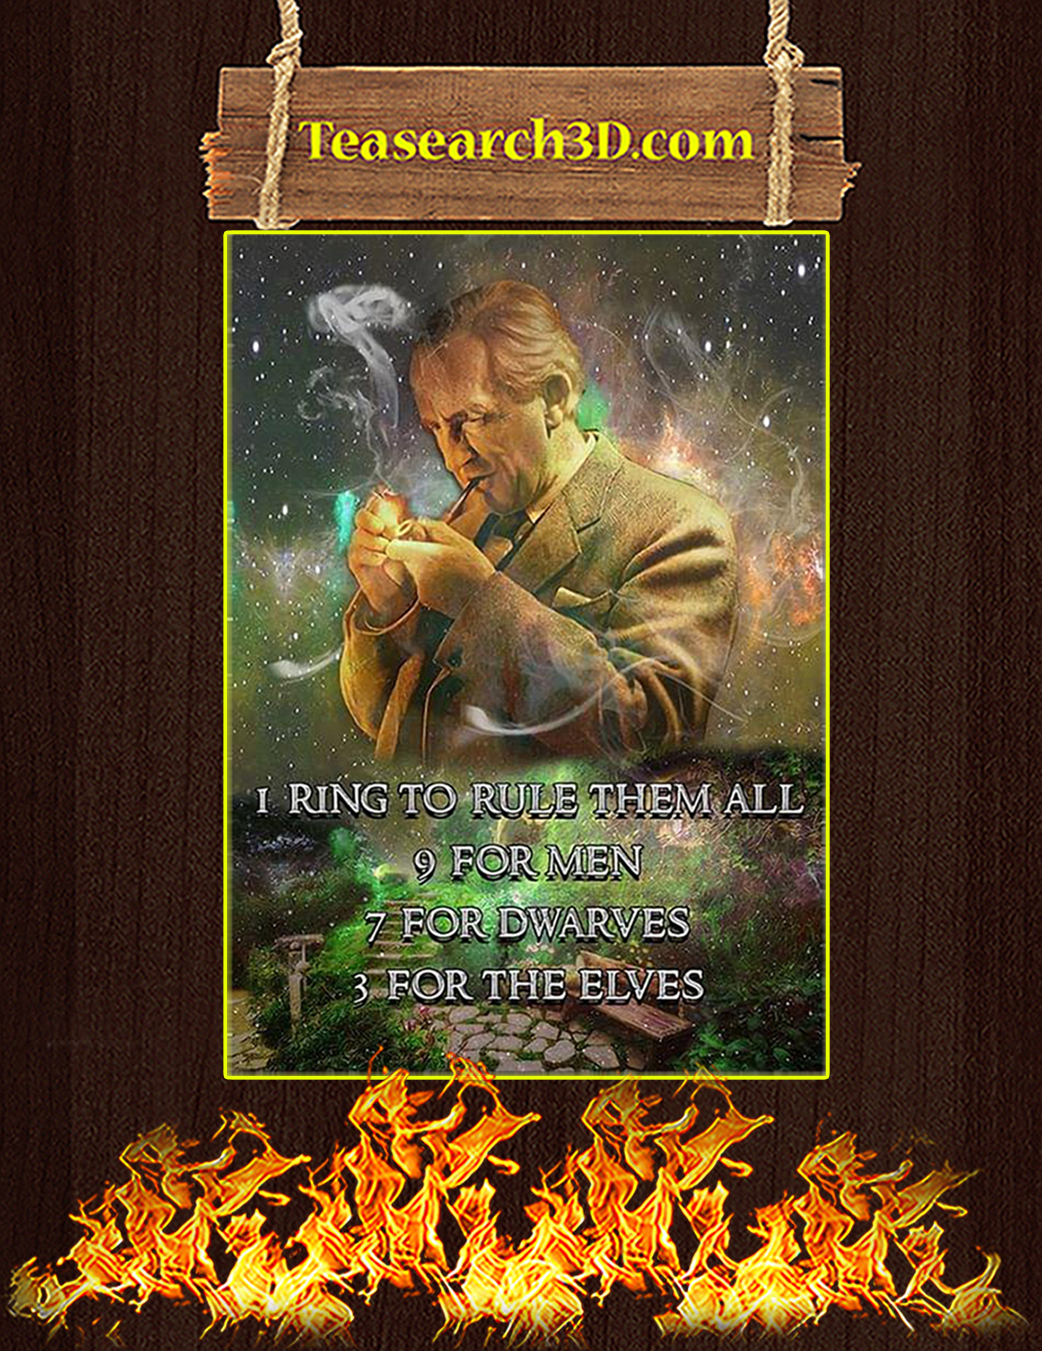 JRR Tolkien I ring to rule them all poster A1